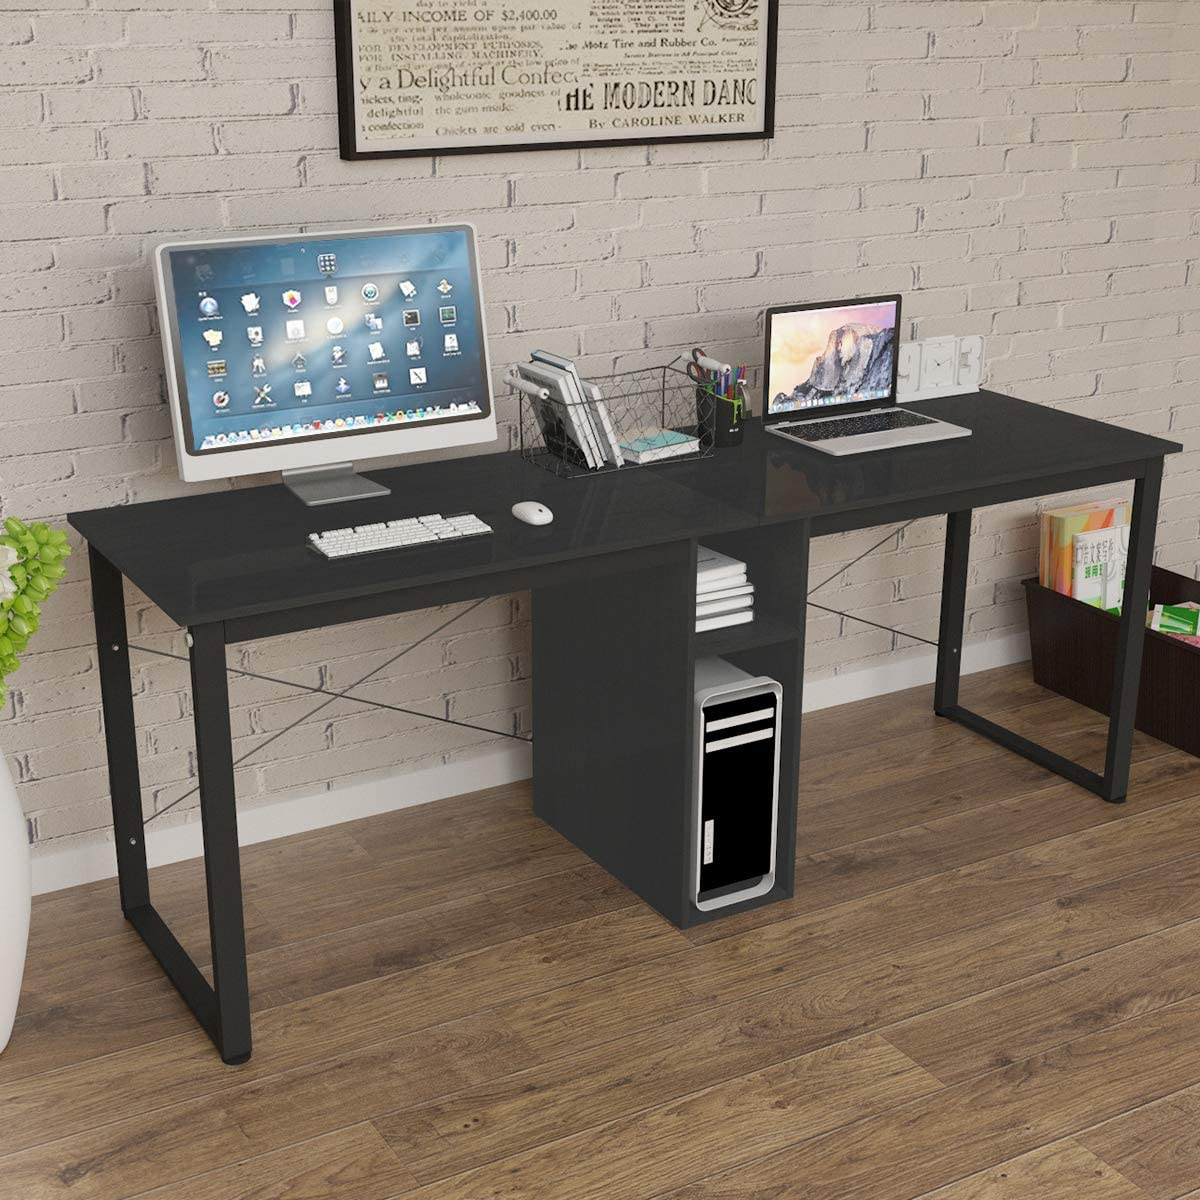 Soges 2 Person Home Office Desk 78inches Large Double Workstation Desk Writing Desk With Storage Black Hz011 200 Bk Ca Amazon Ca Home Kitchen